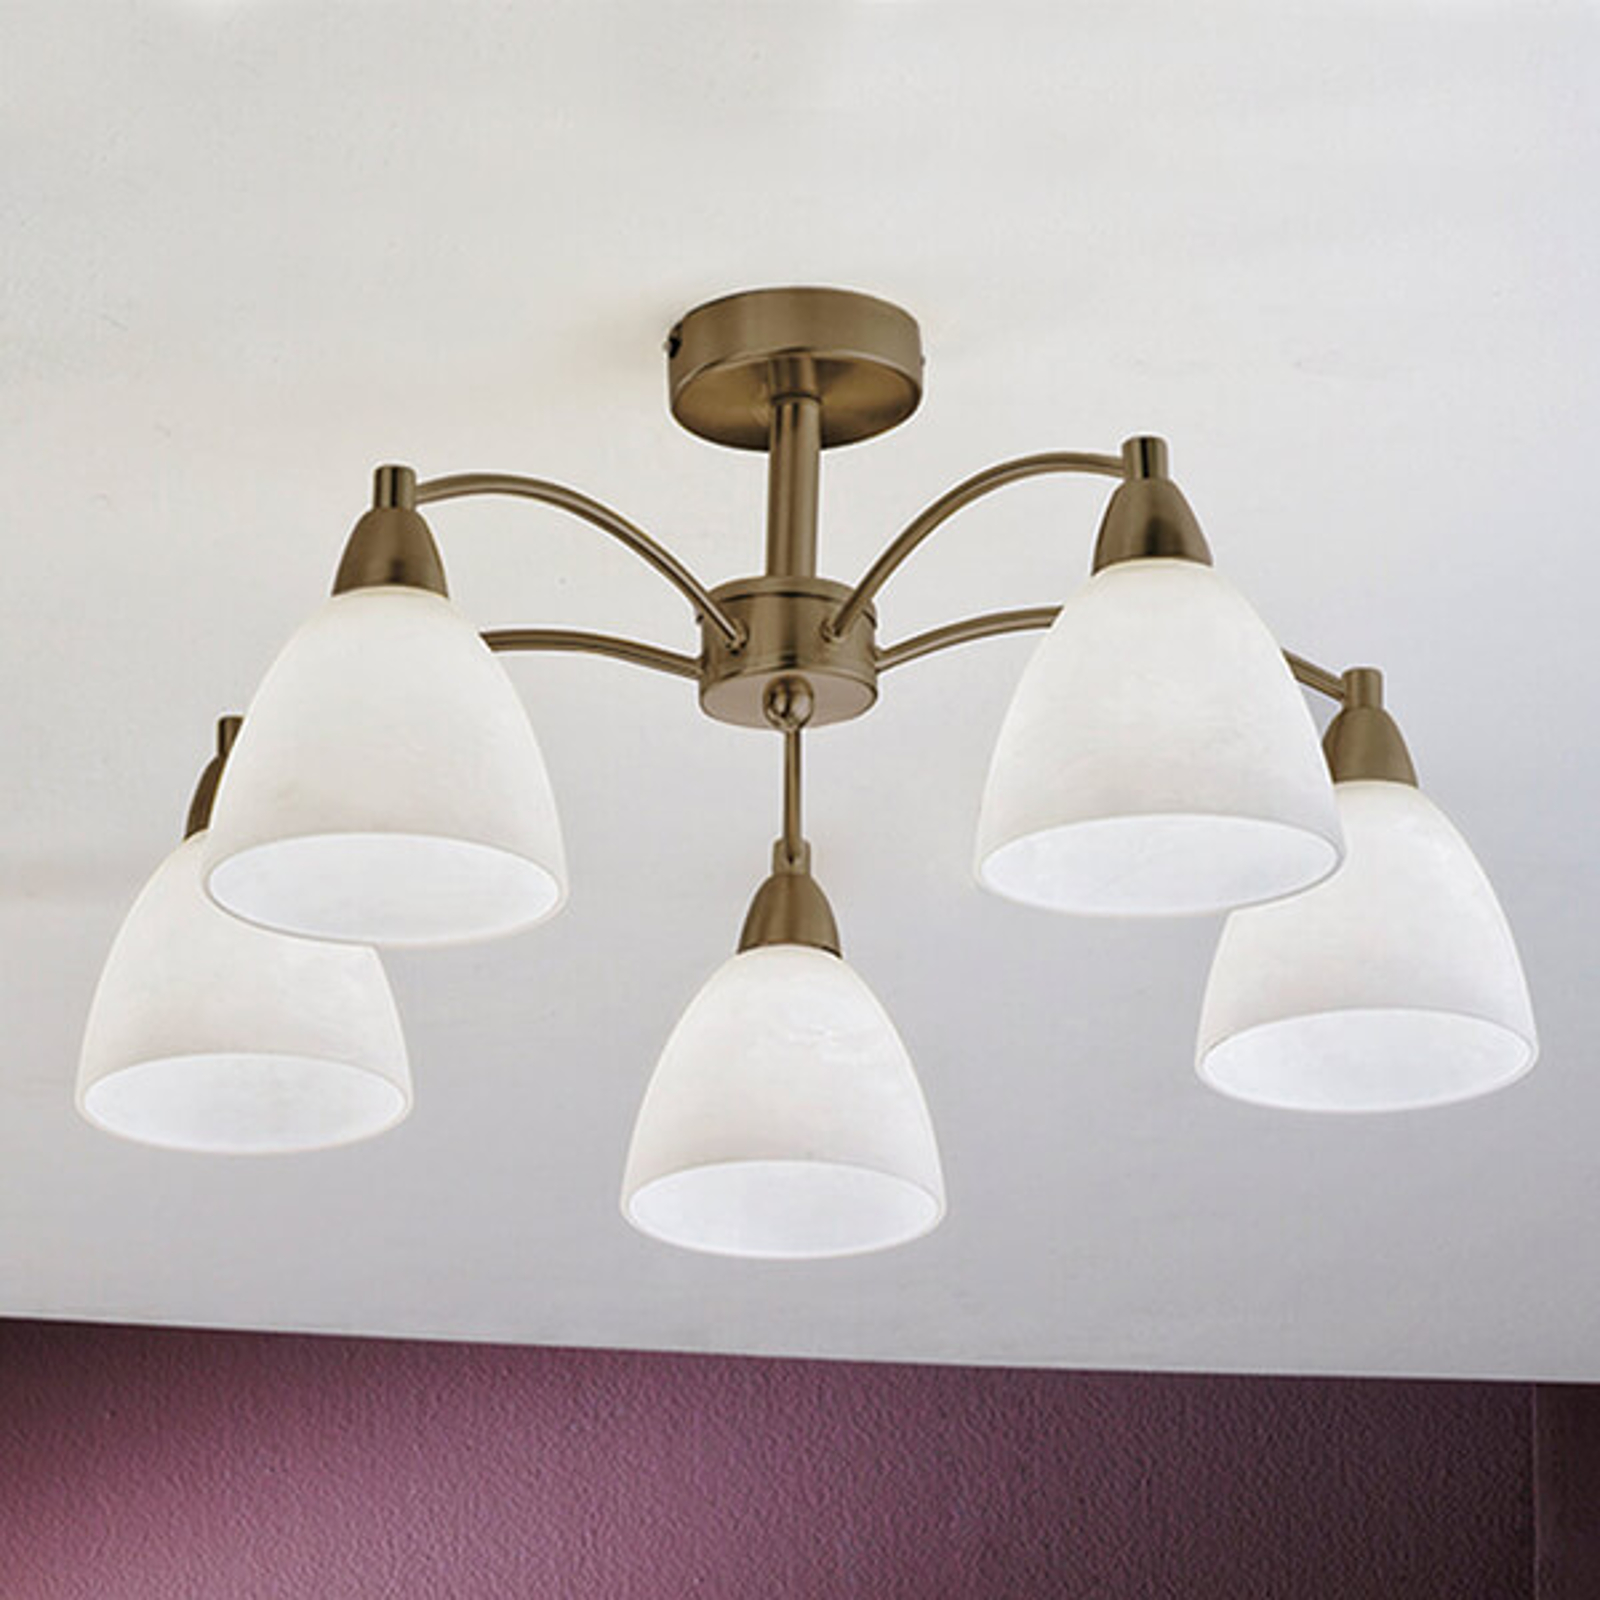 Plafondlamp Kinga in oude messing look, 5 lampen